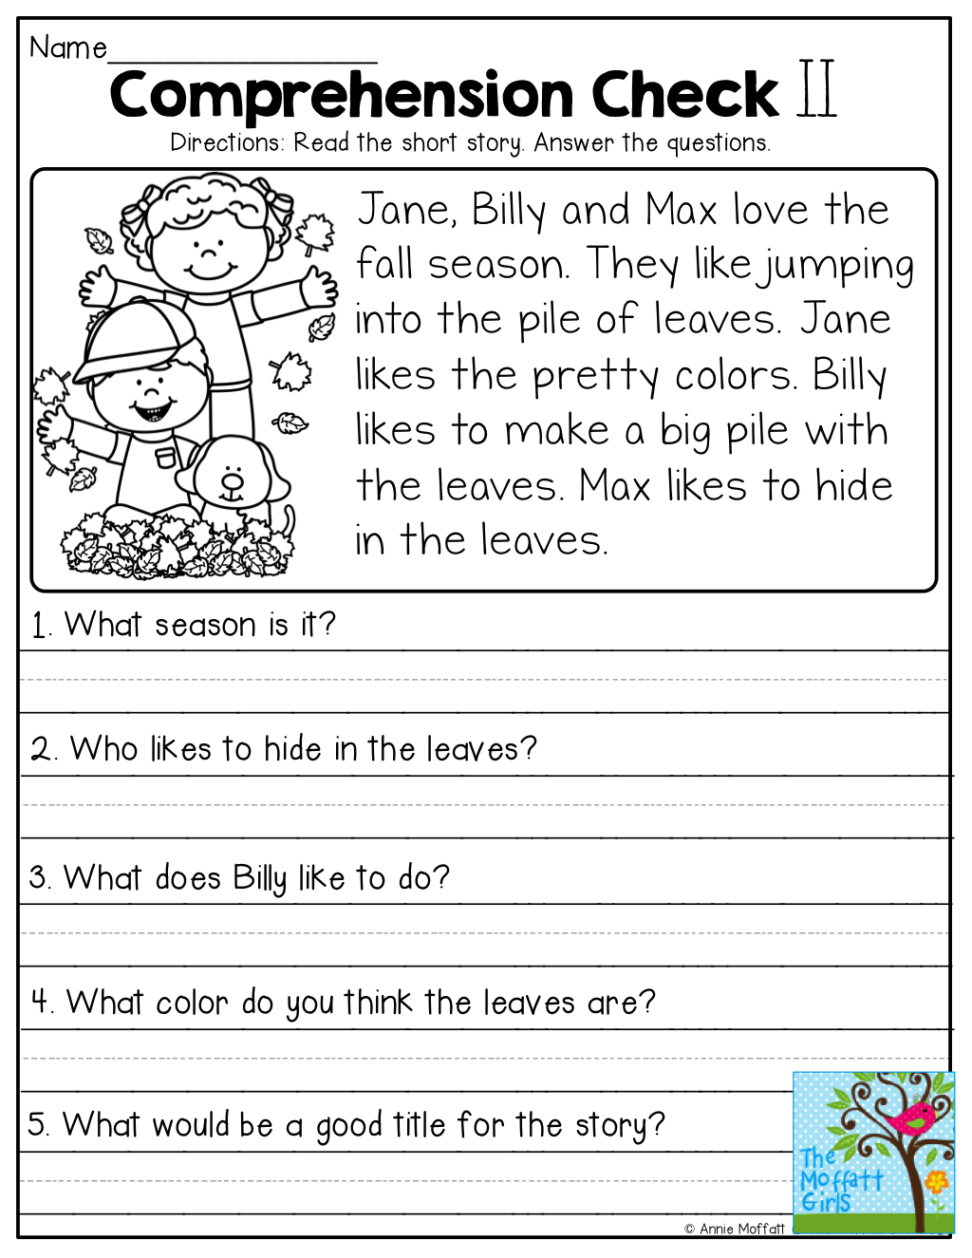 Worksheet. Free Printable Reading Comprehension Worksheets - Free | Free Printable Reading Comprehension Worksheets For Adults